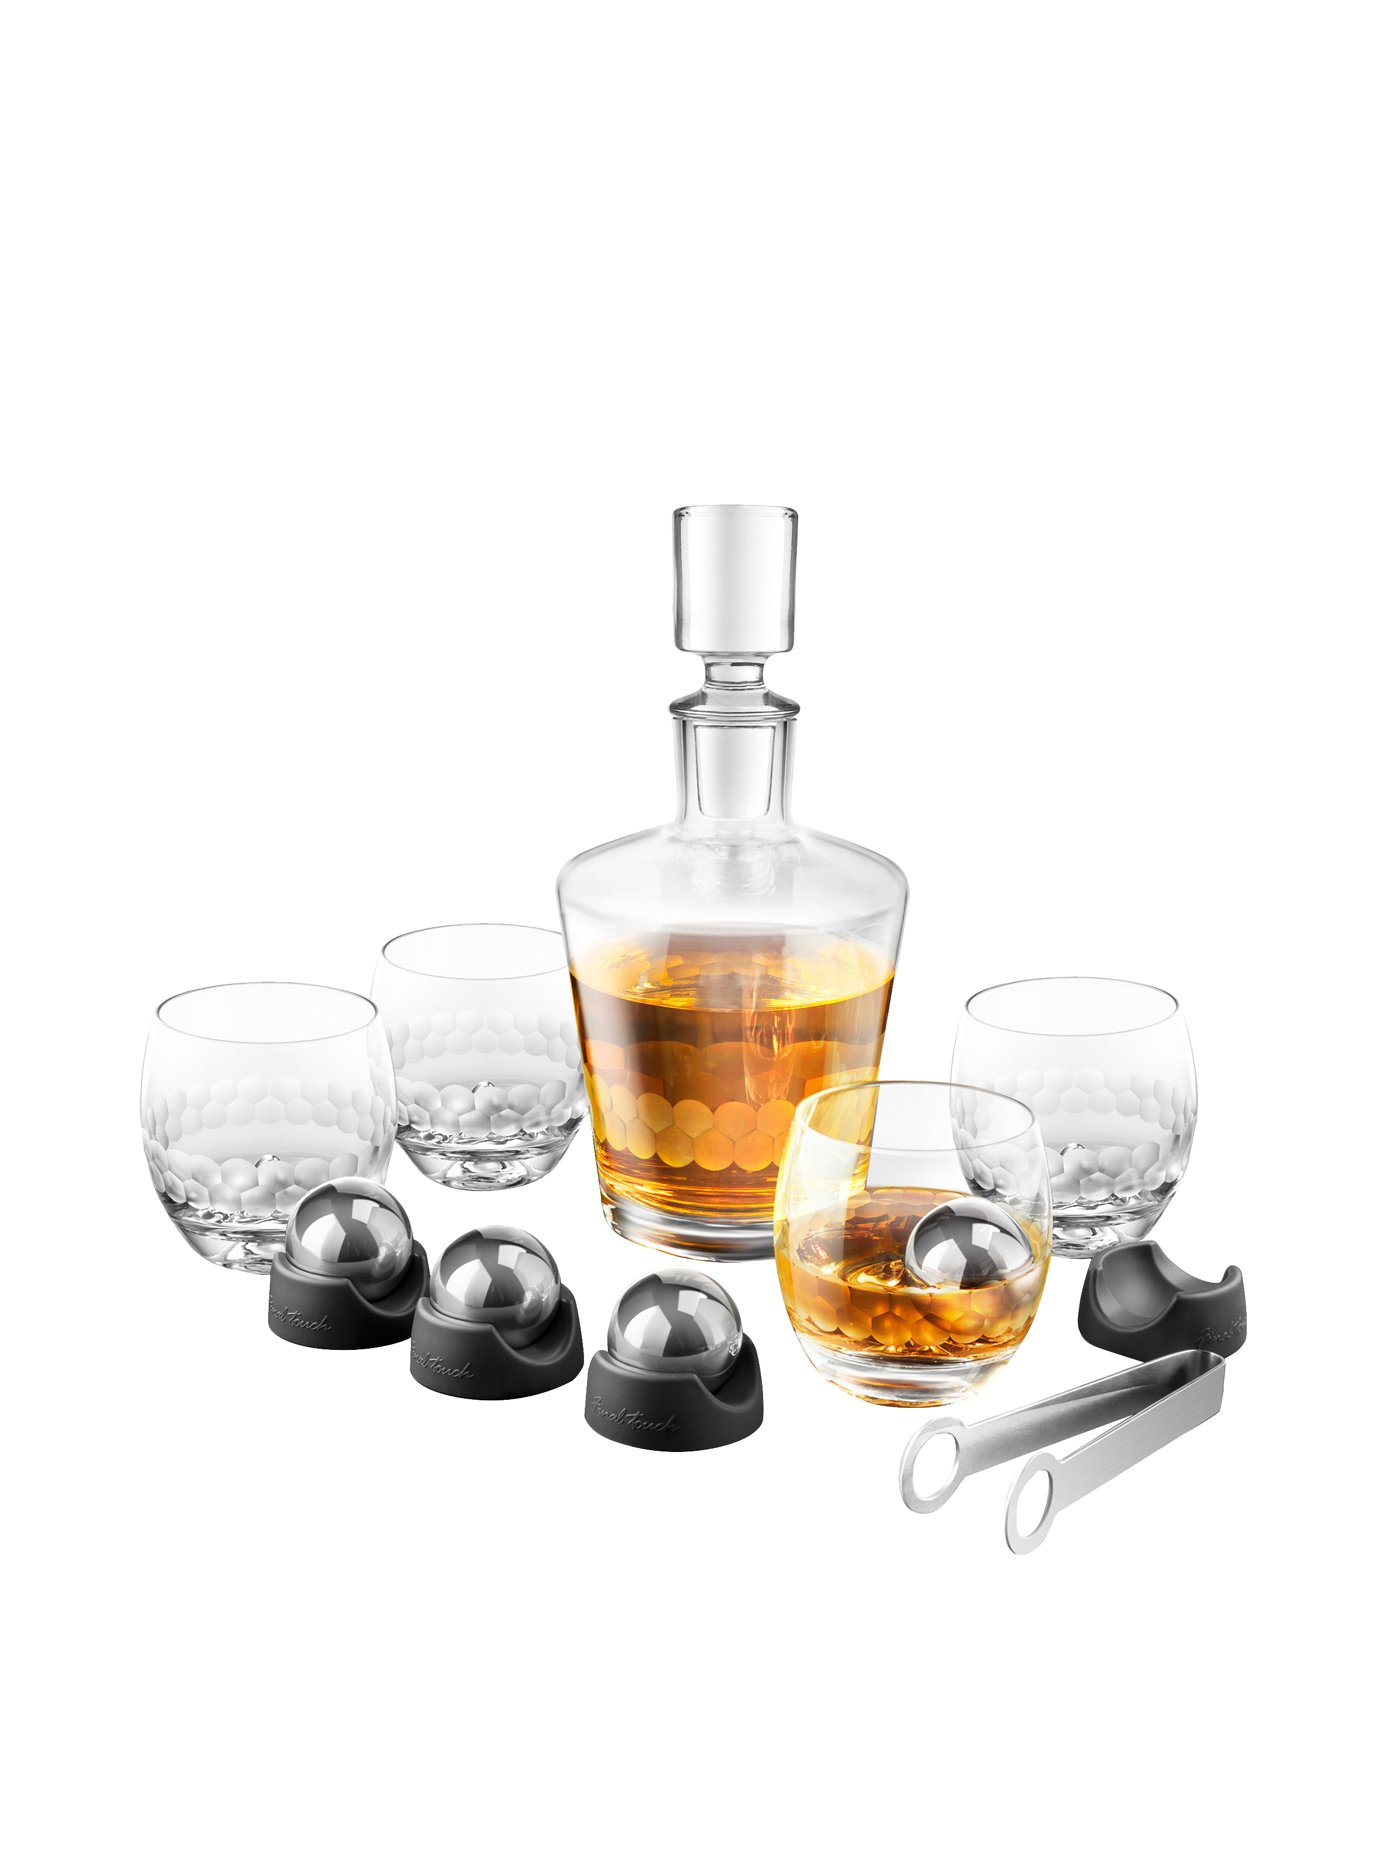 On The Rock Glass & Ice Ball Set (15 Pieces)